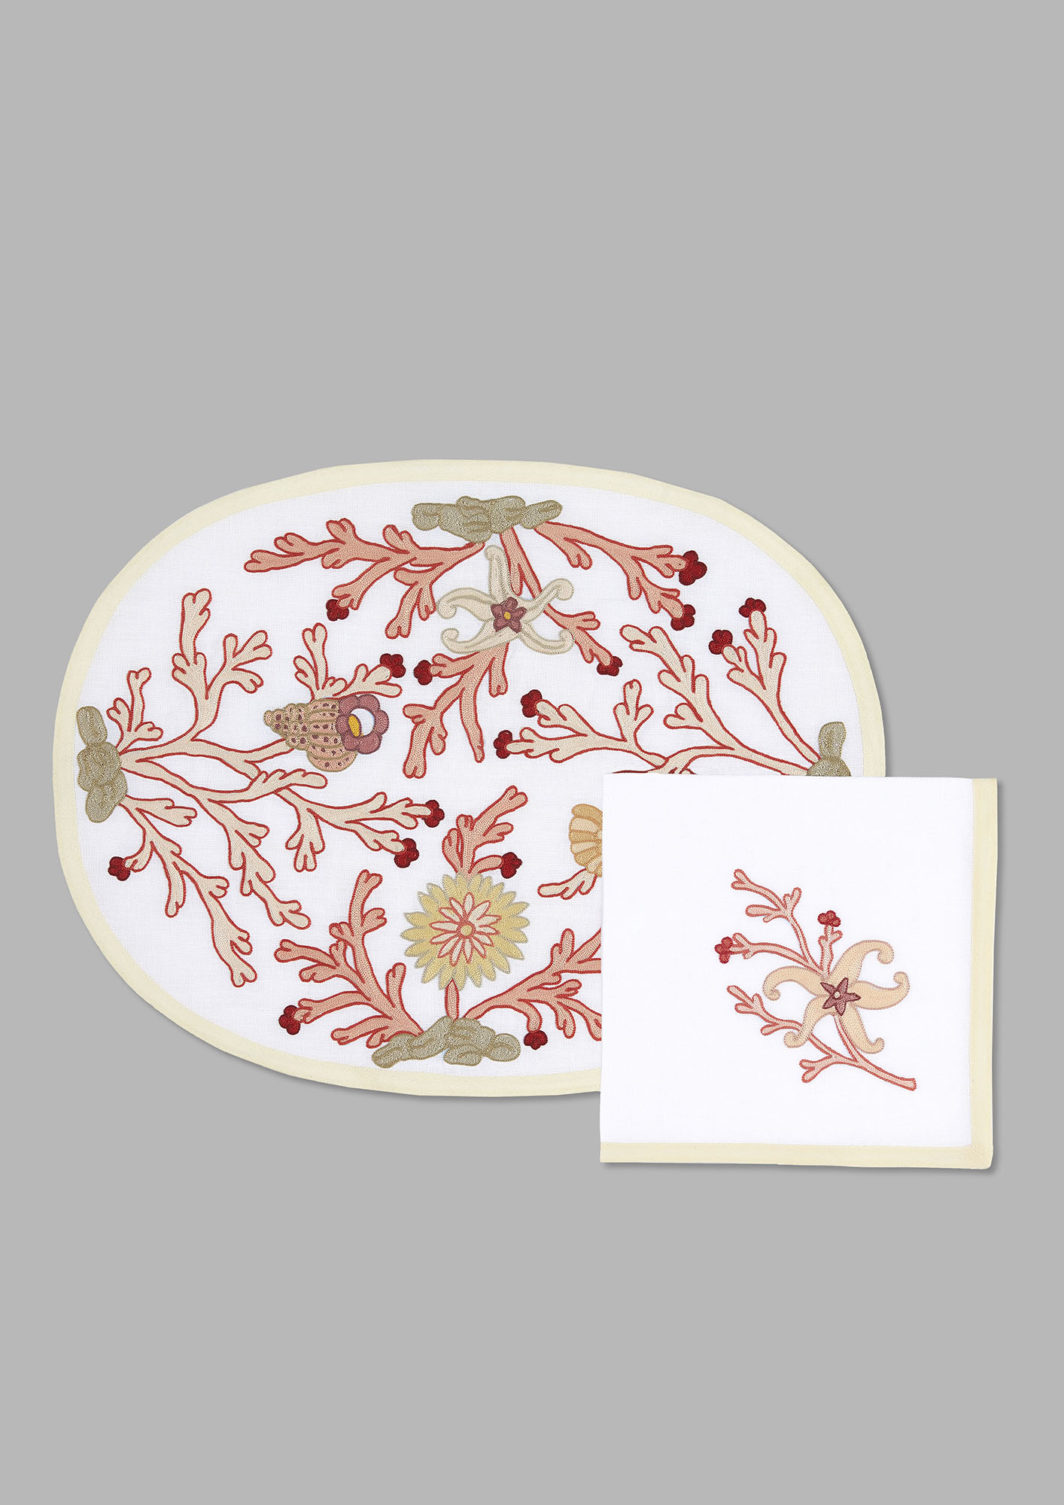 PINK CORALS PLACEMAT SET OF 2